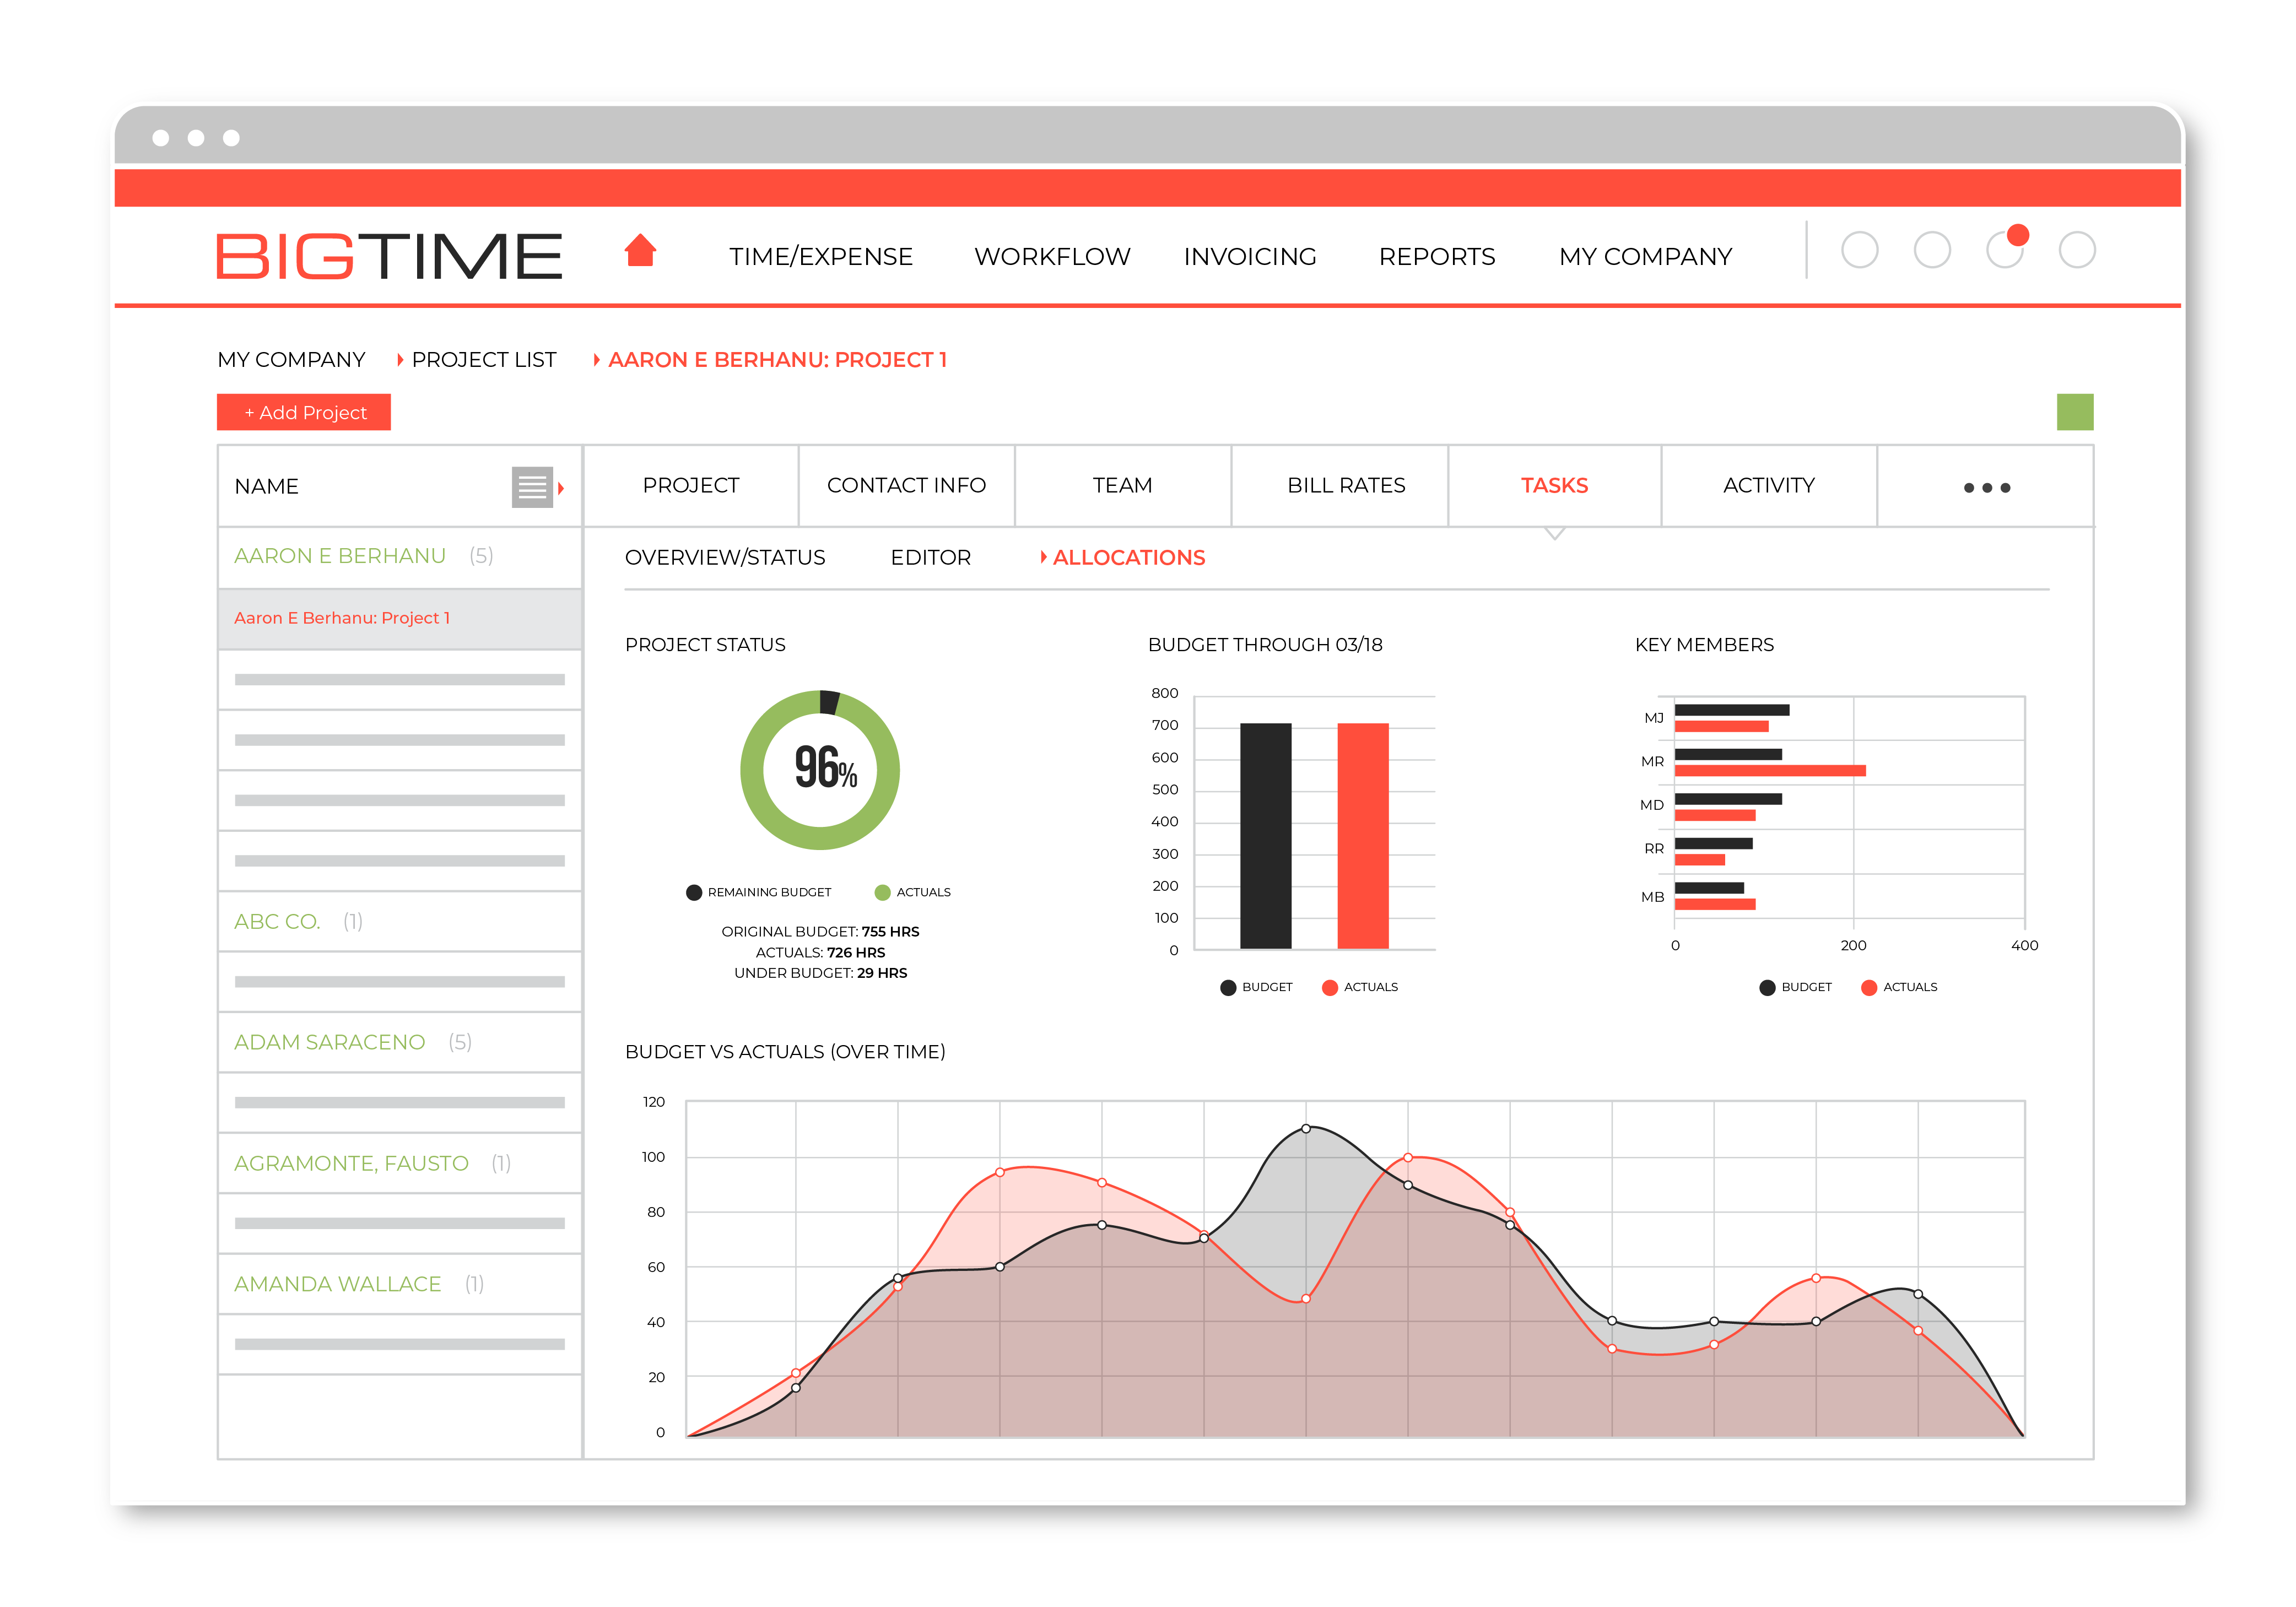 Gain a big-picture view into operational insights to make adjustments to how resources are managed